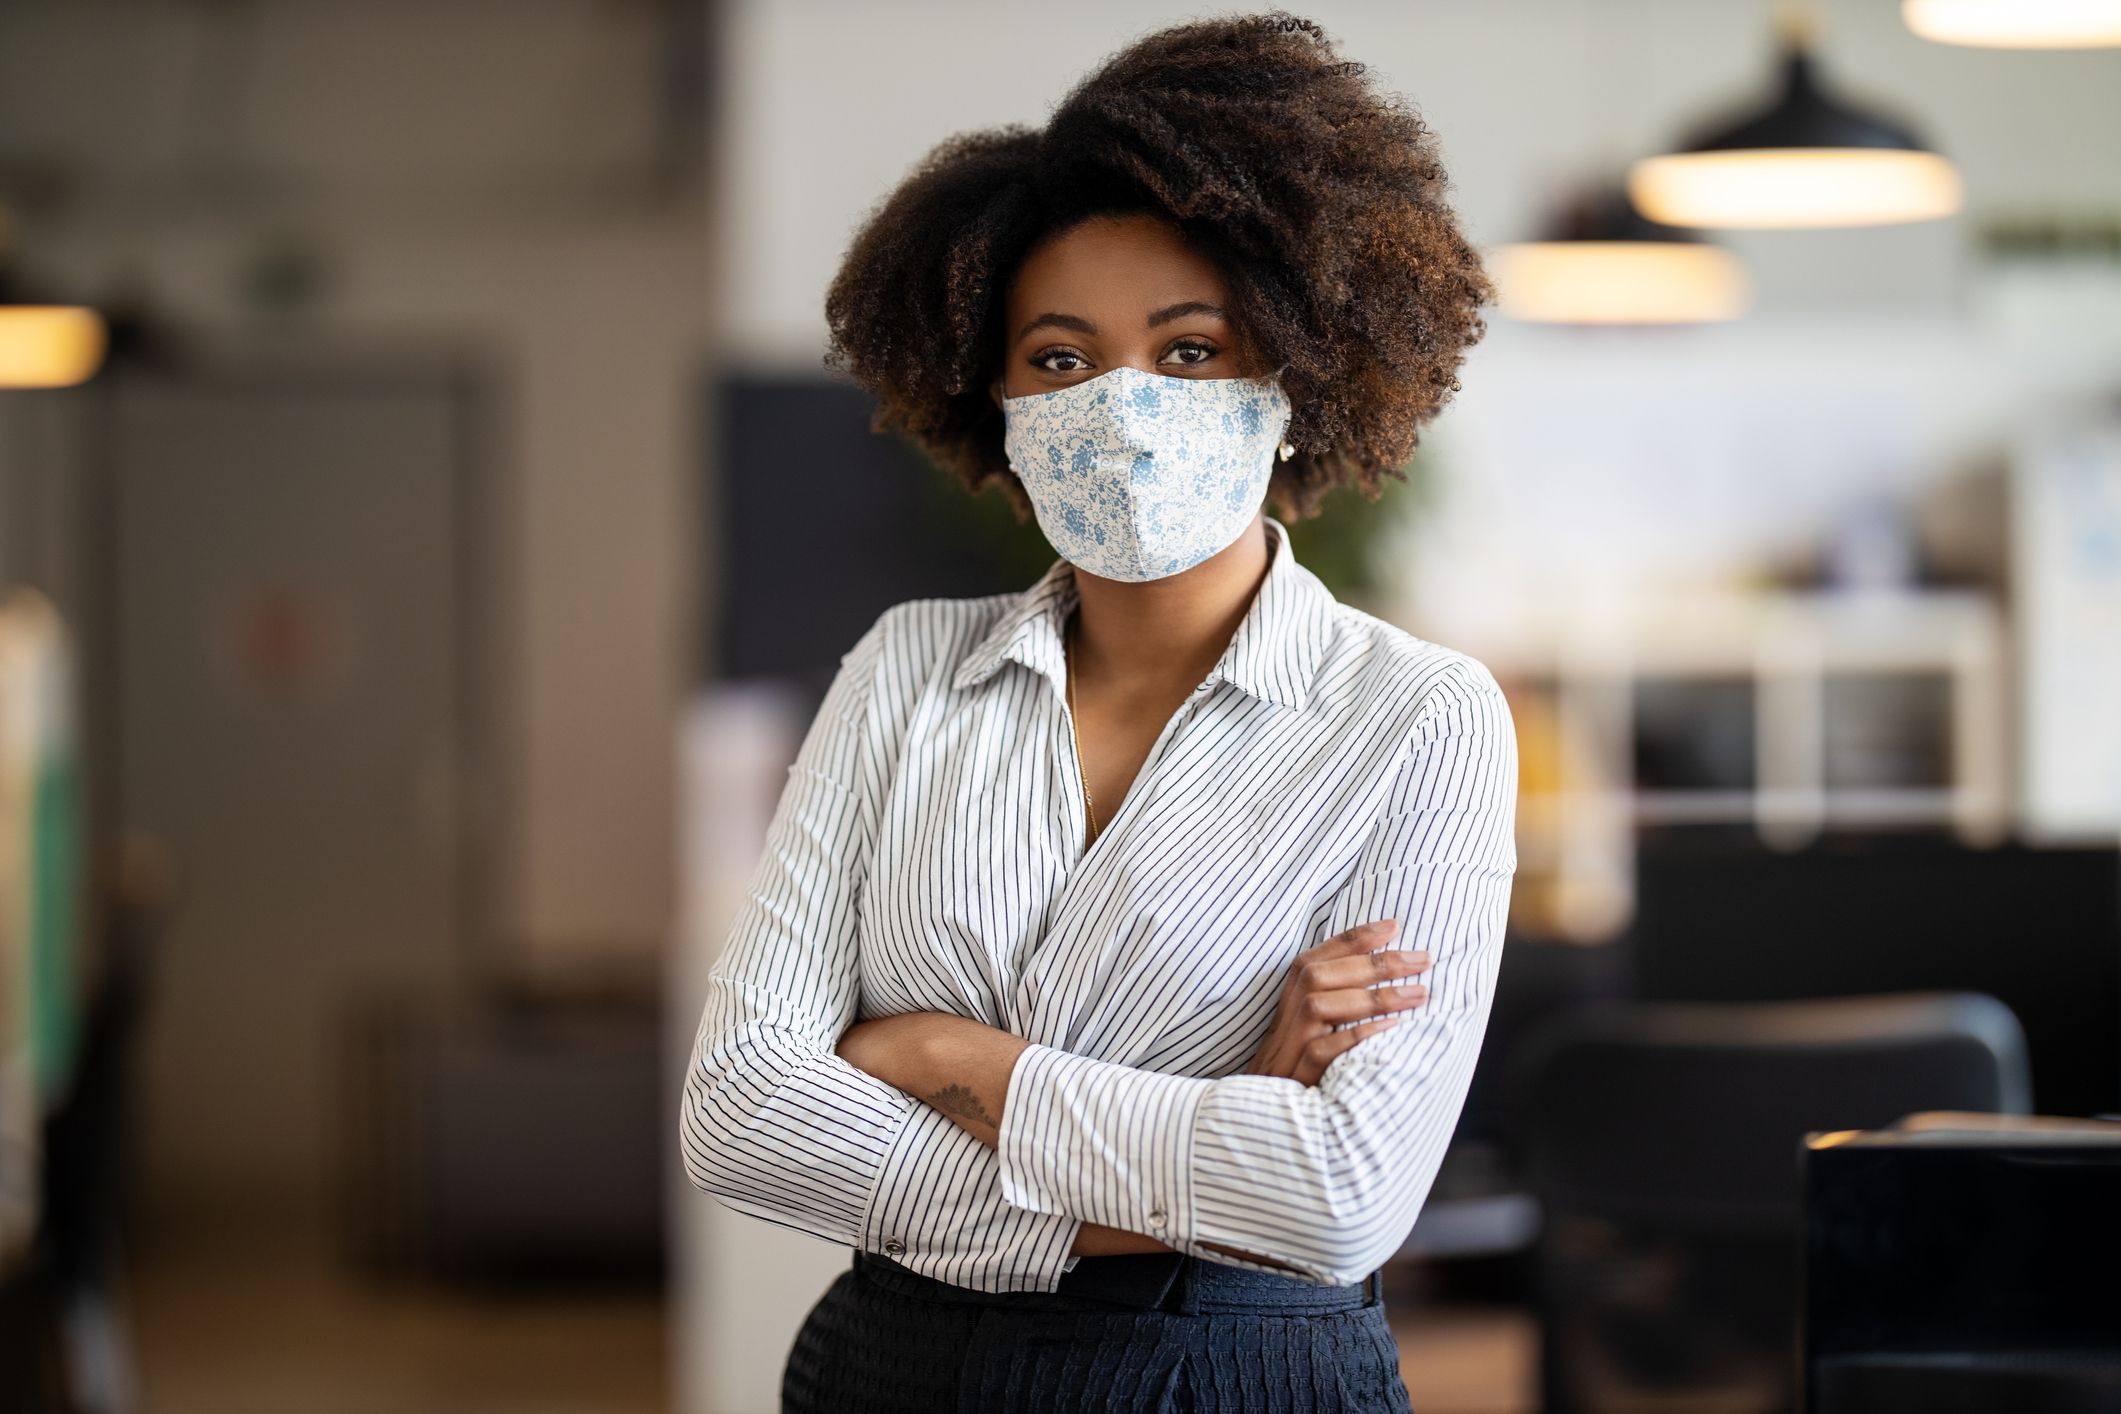 Face Masks and Coronavirus: What Are the Latest Rules?